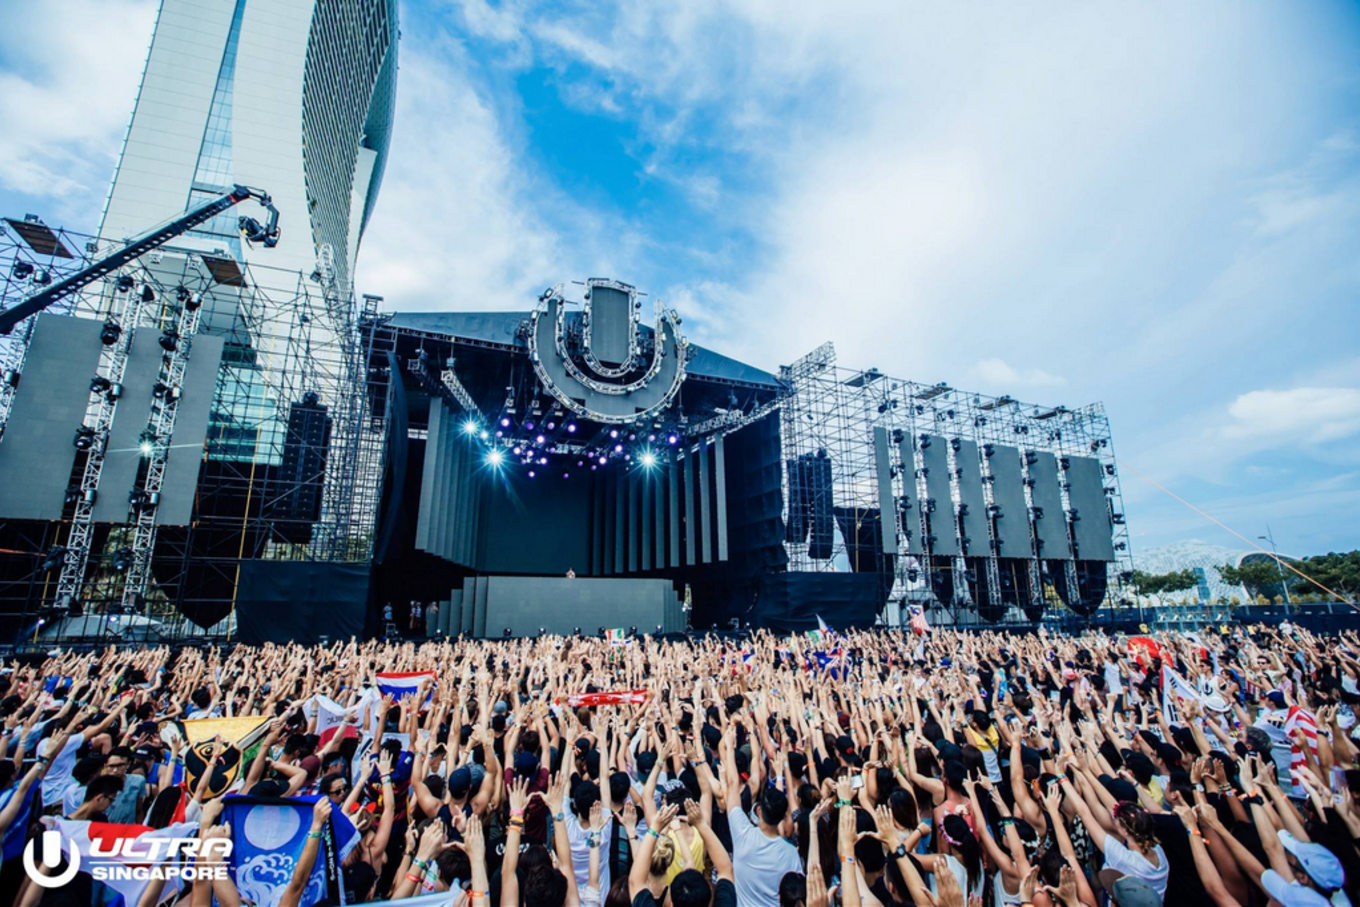 Party-goers at ULTRA Singapore 2017